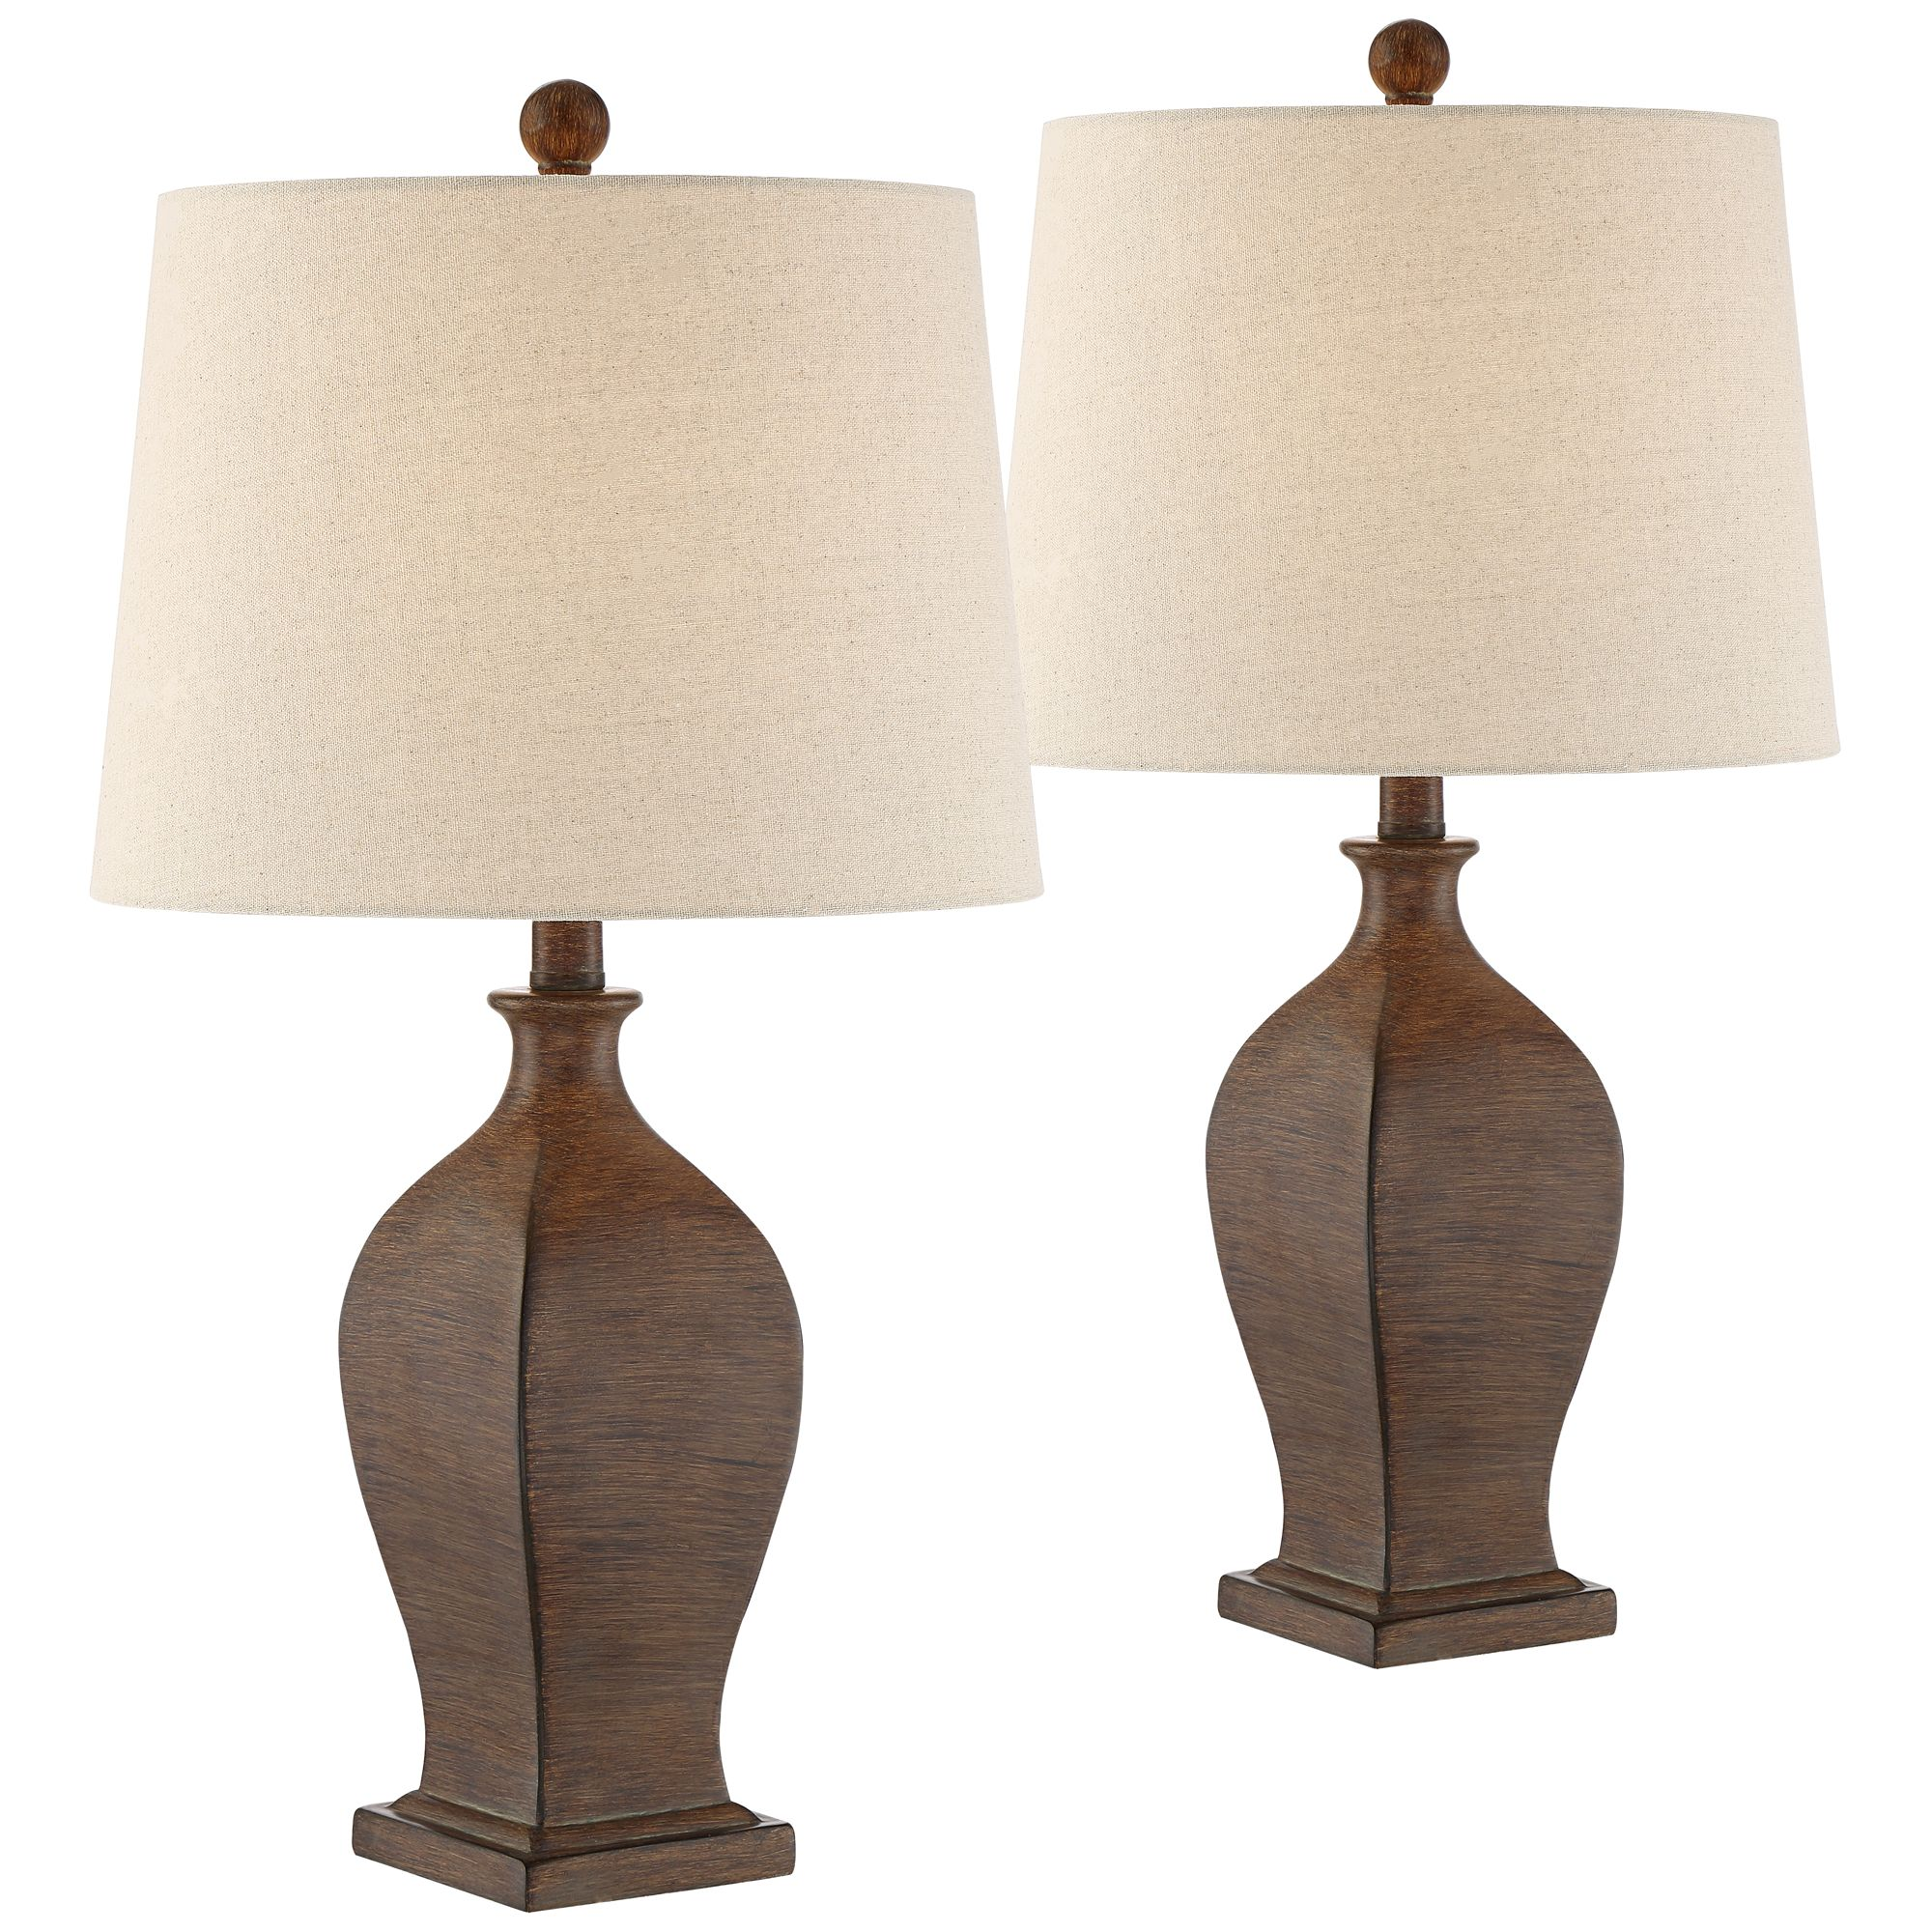 Regency Hill Country Cottage Table Lamps Set of 2 Brown Oatmeal Drum Shade for Living Room Family Bedroom Bedside Nightstand